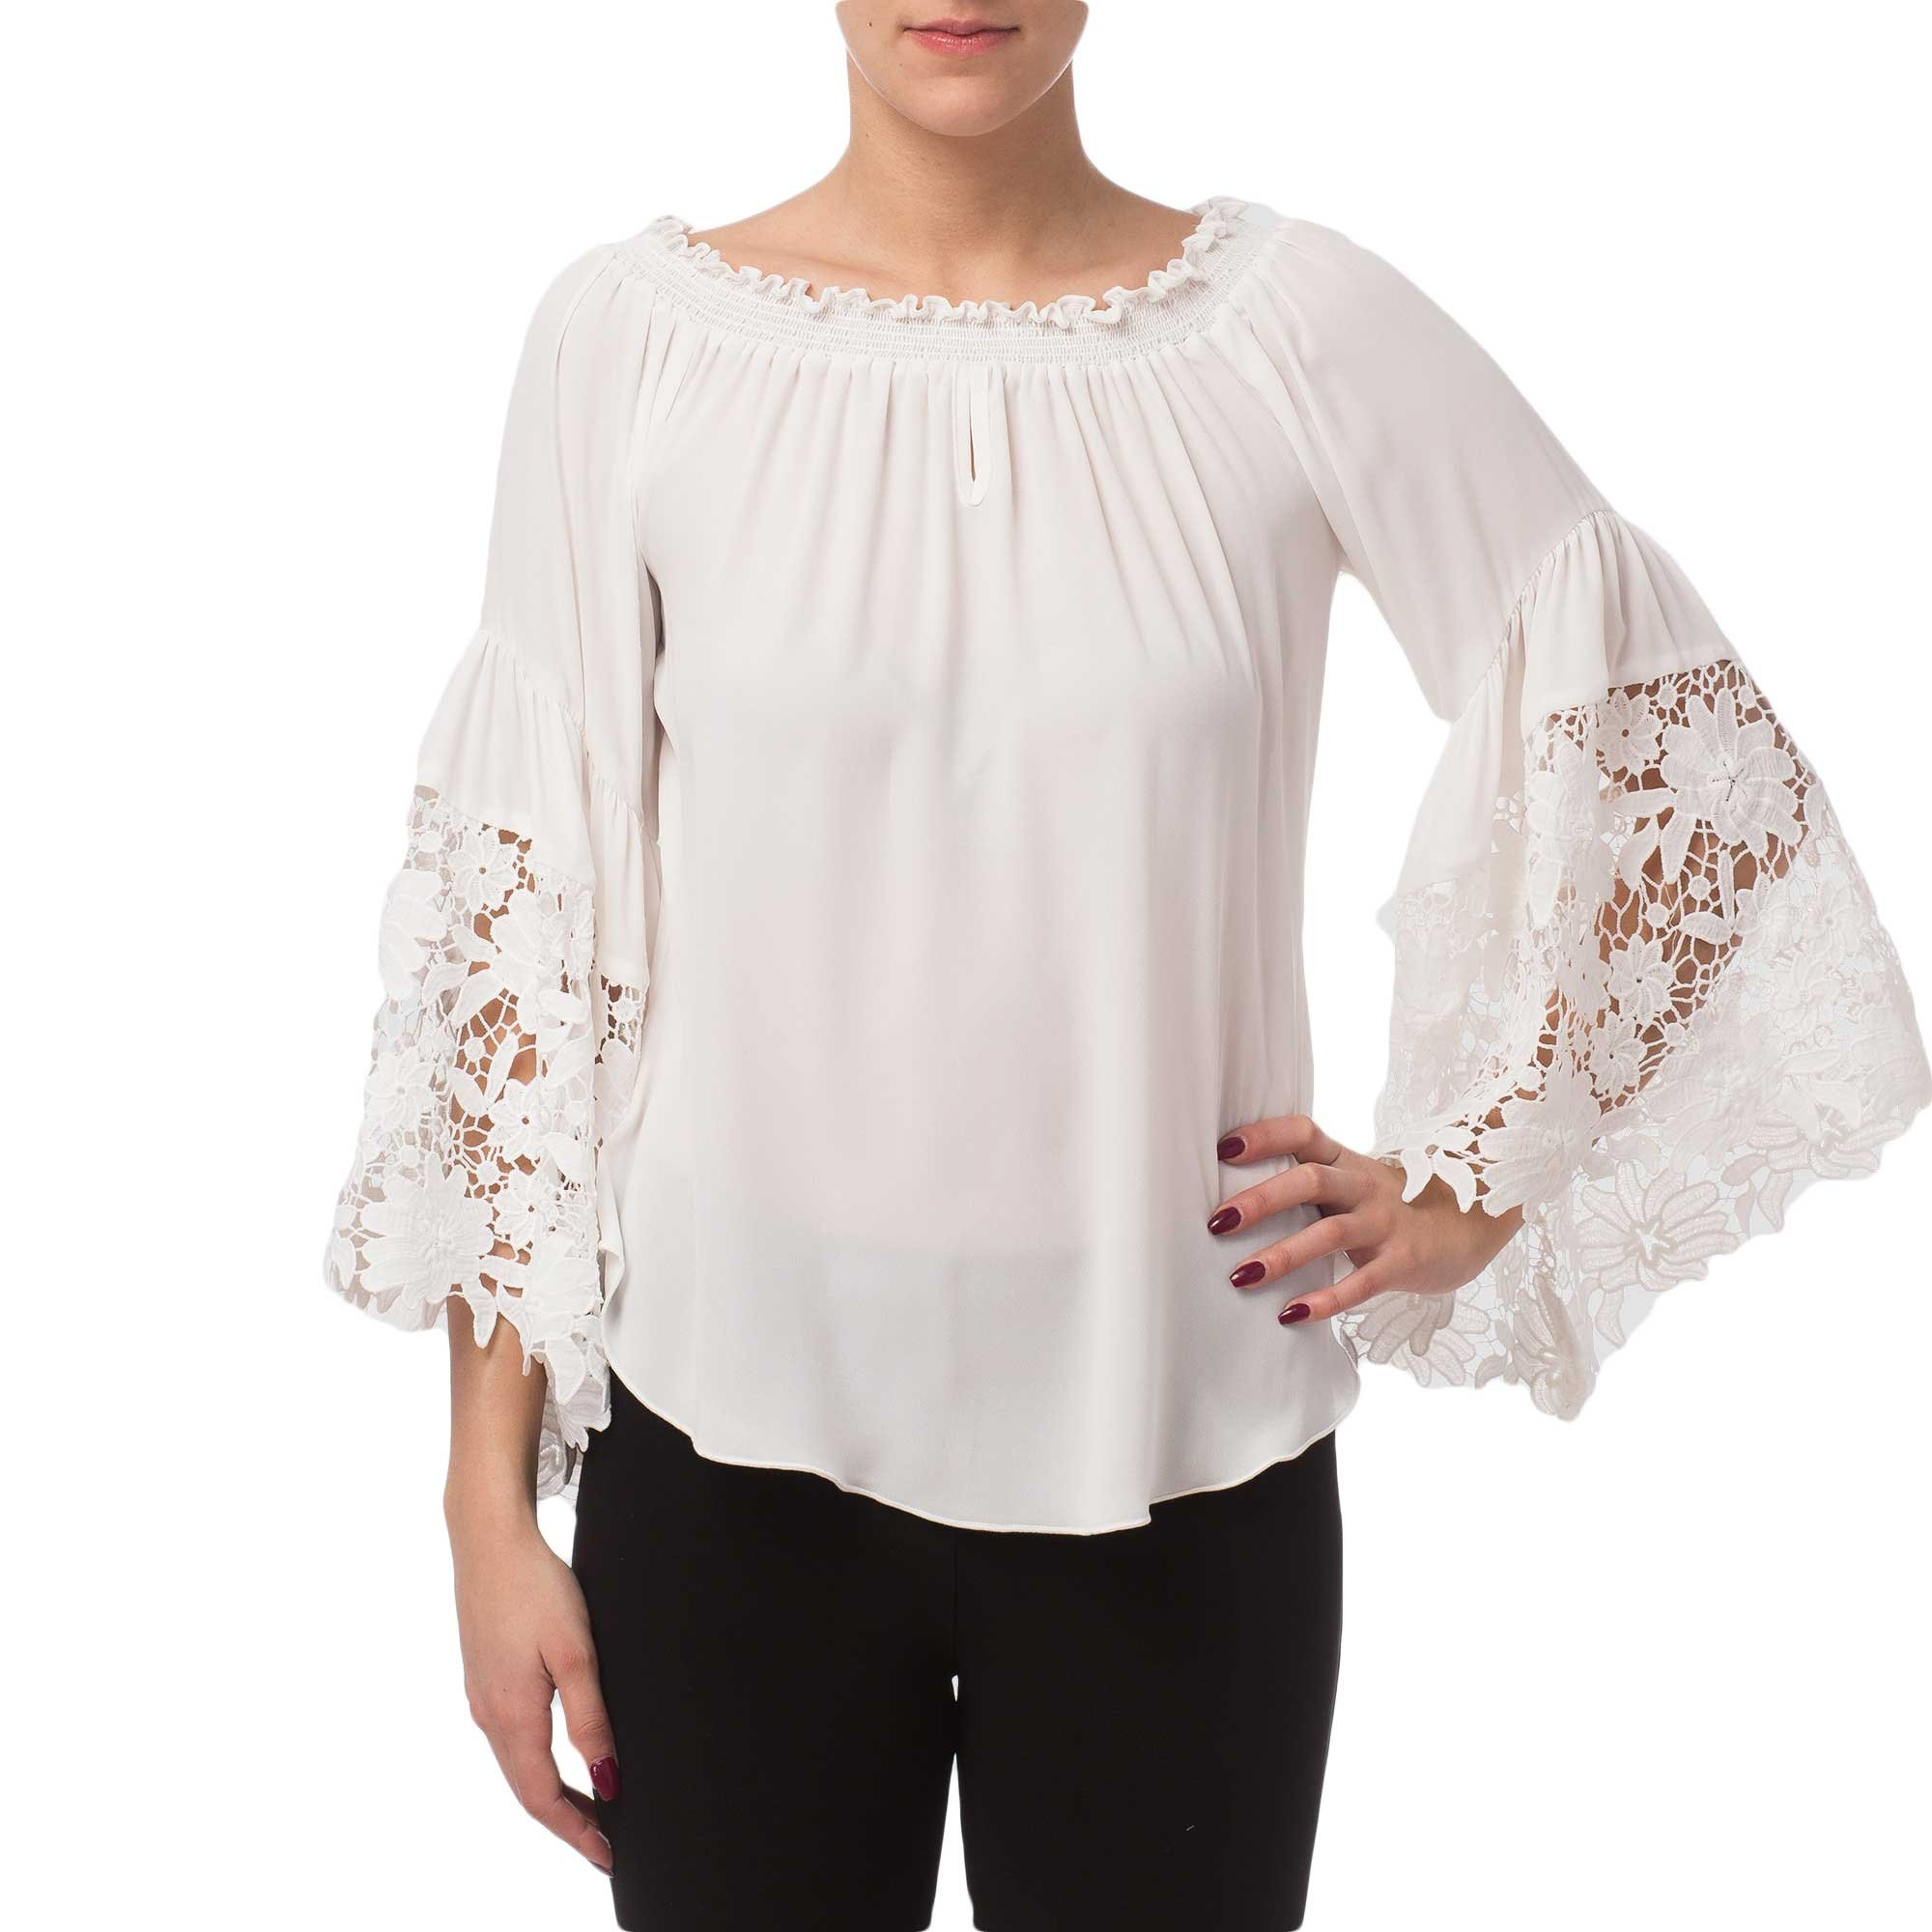 Joseph Ribkoff Off White On/Off Shoulder Lace Bell Sleeve Top Style 173286 - Size 10